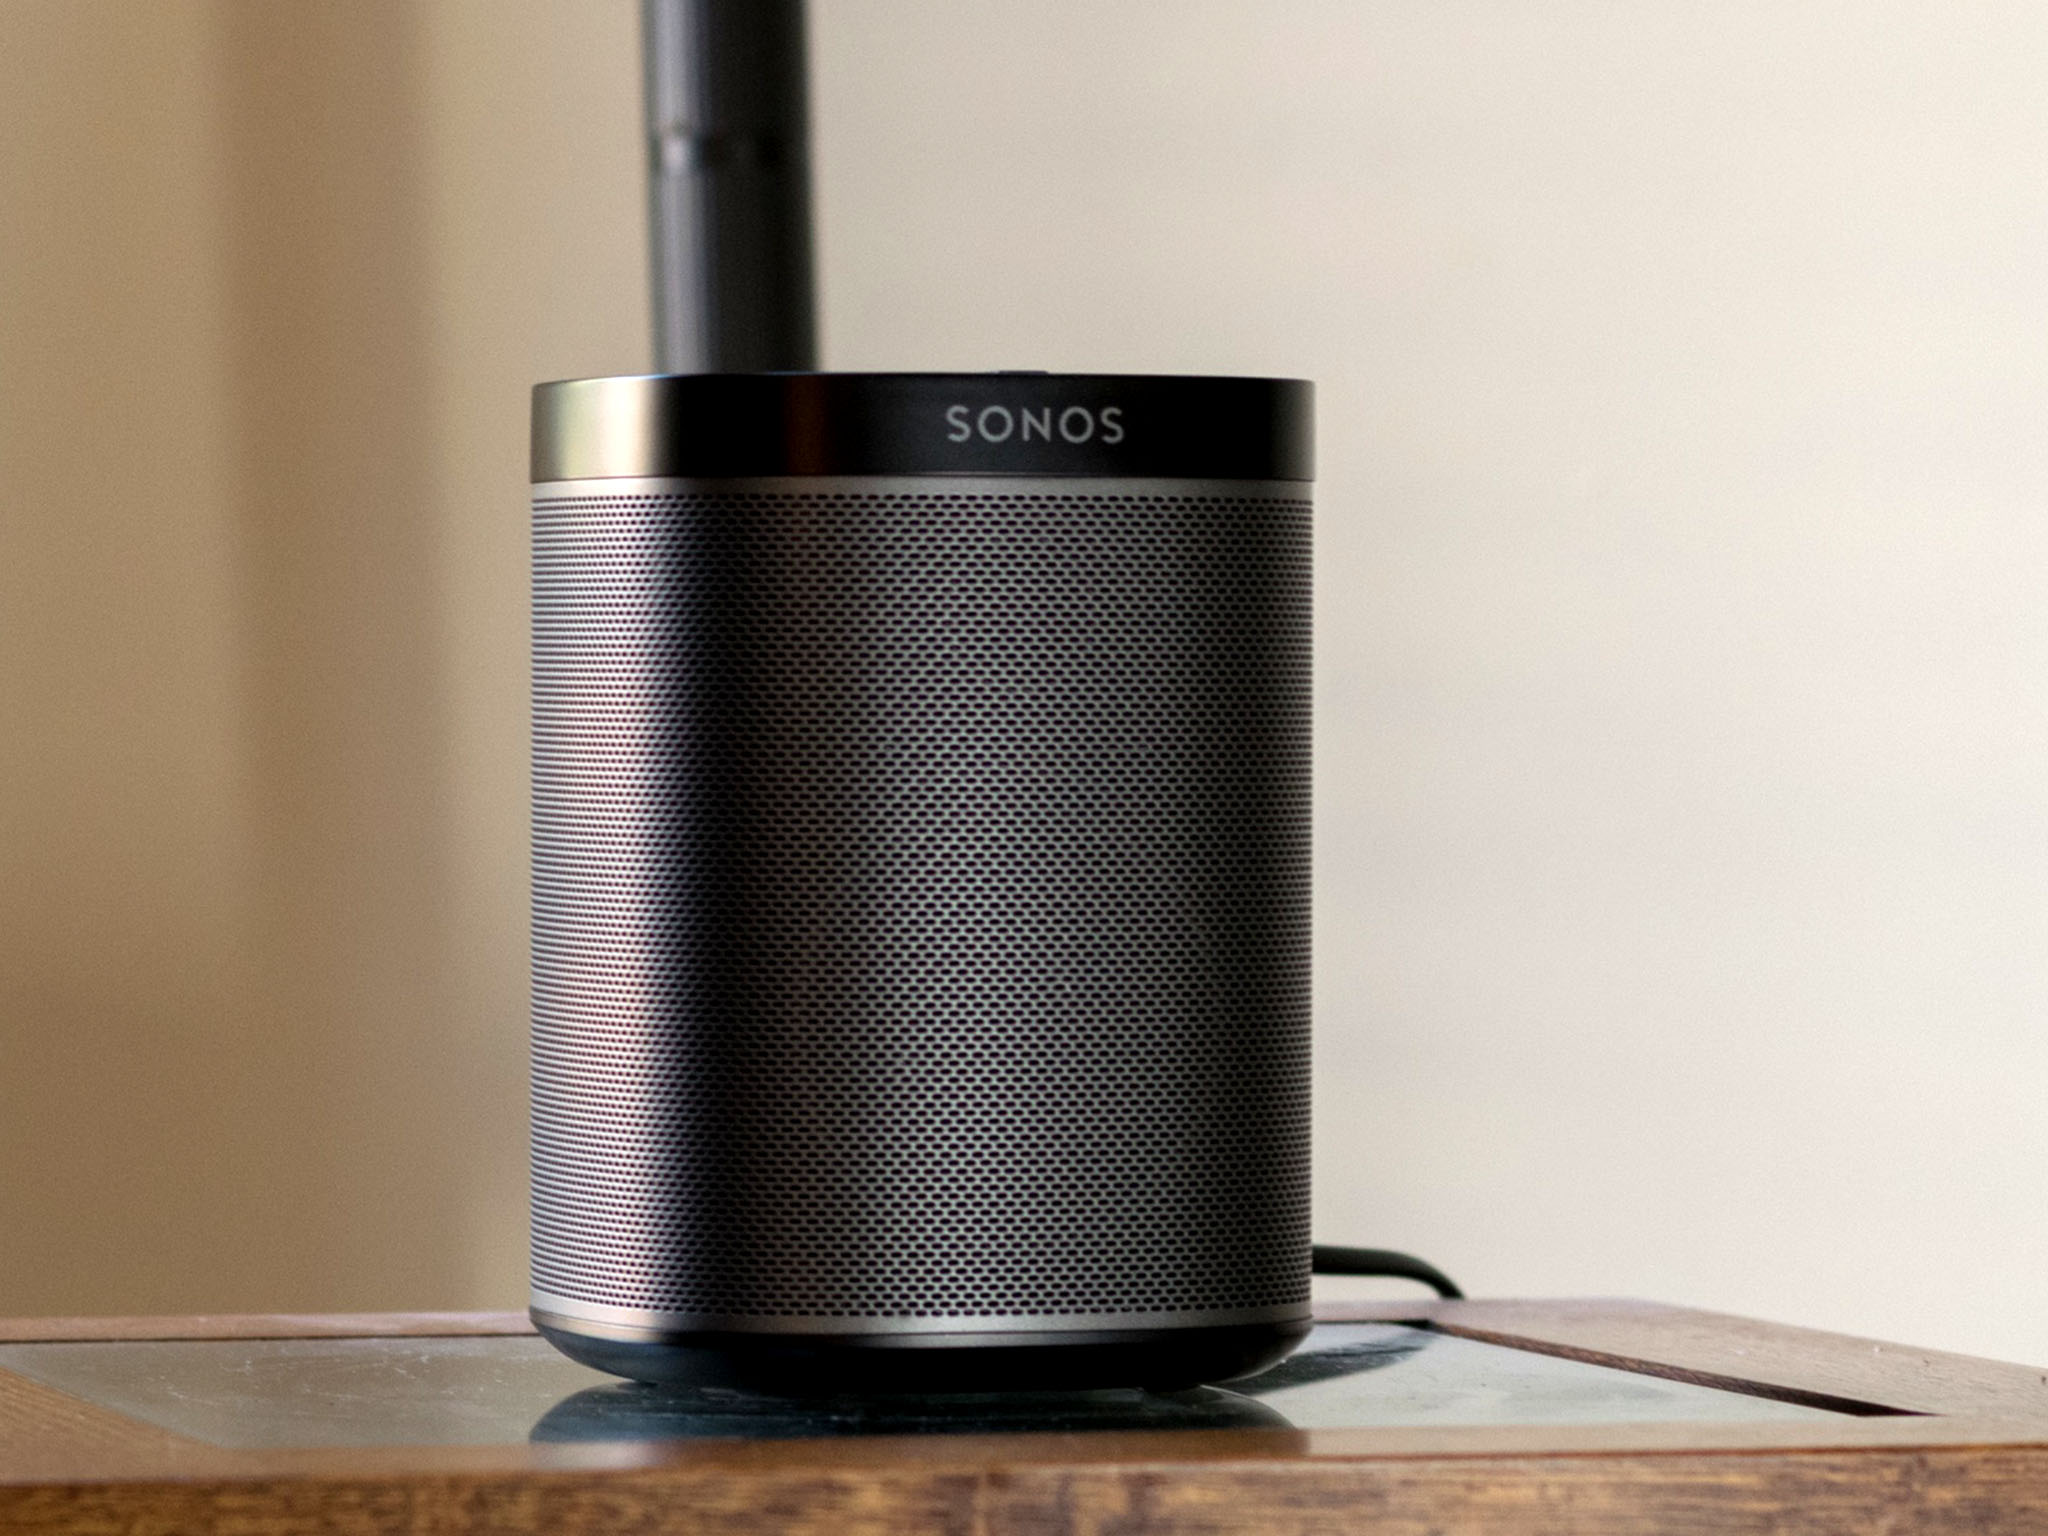 Tivoli Audio Vs Sonos Sonos Play 1 Vs Bose Soundtouch 10 Which Should You Get Imore